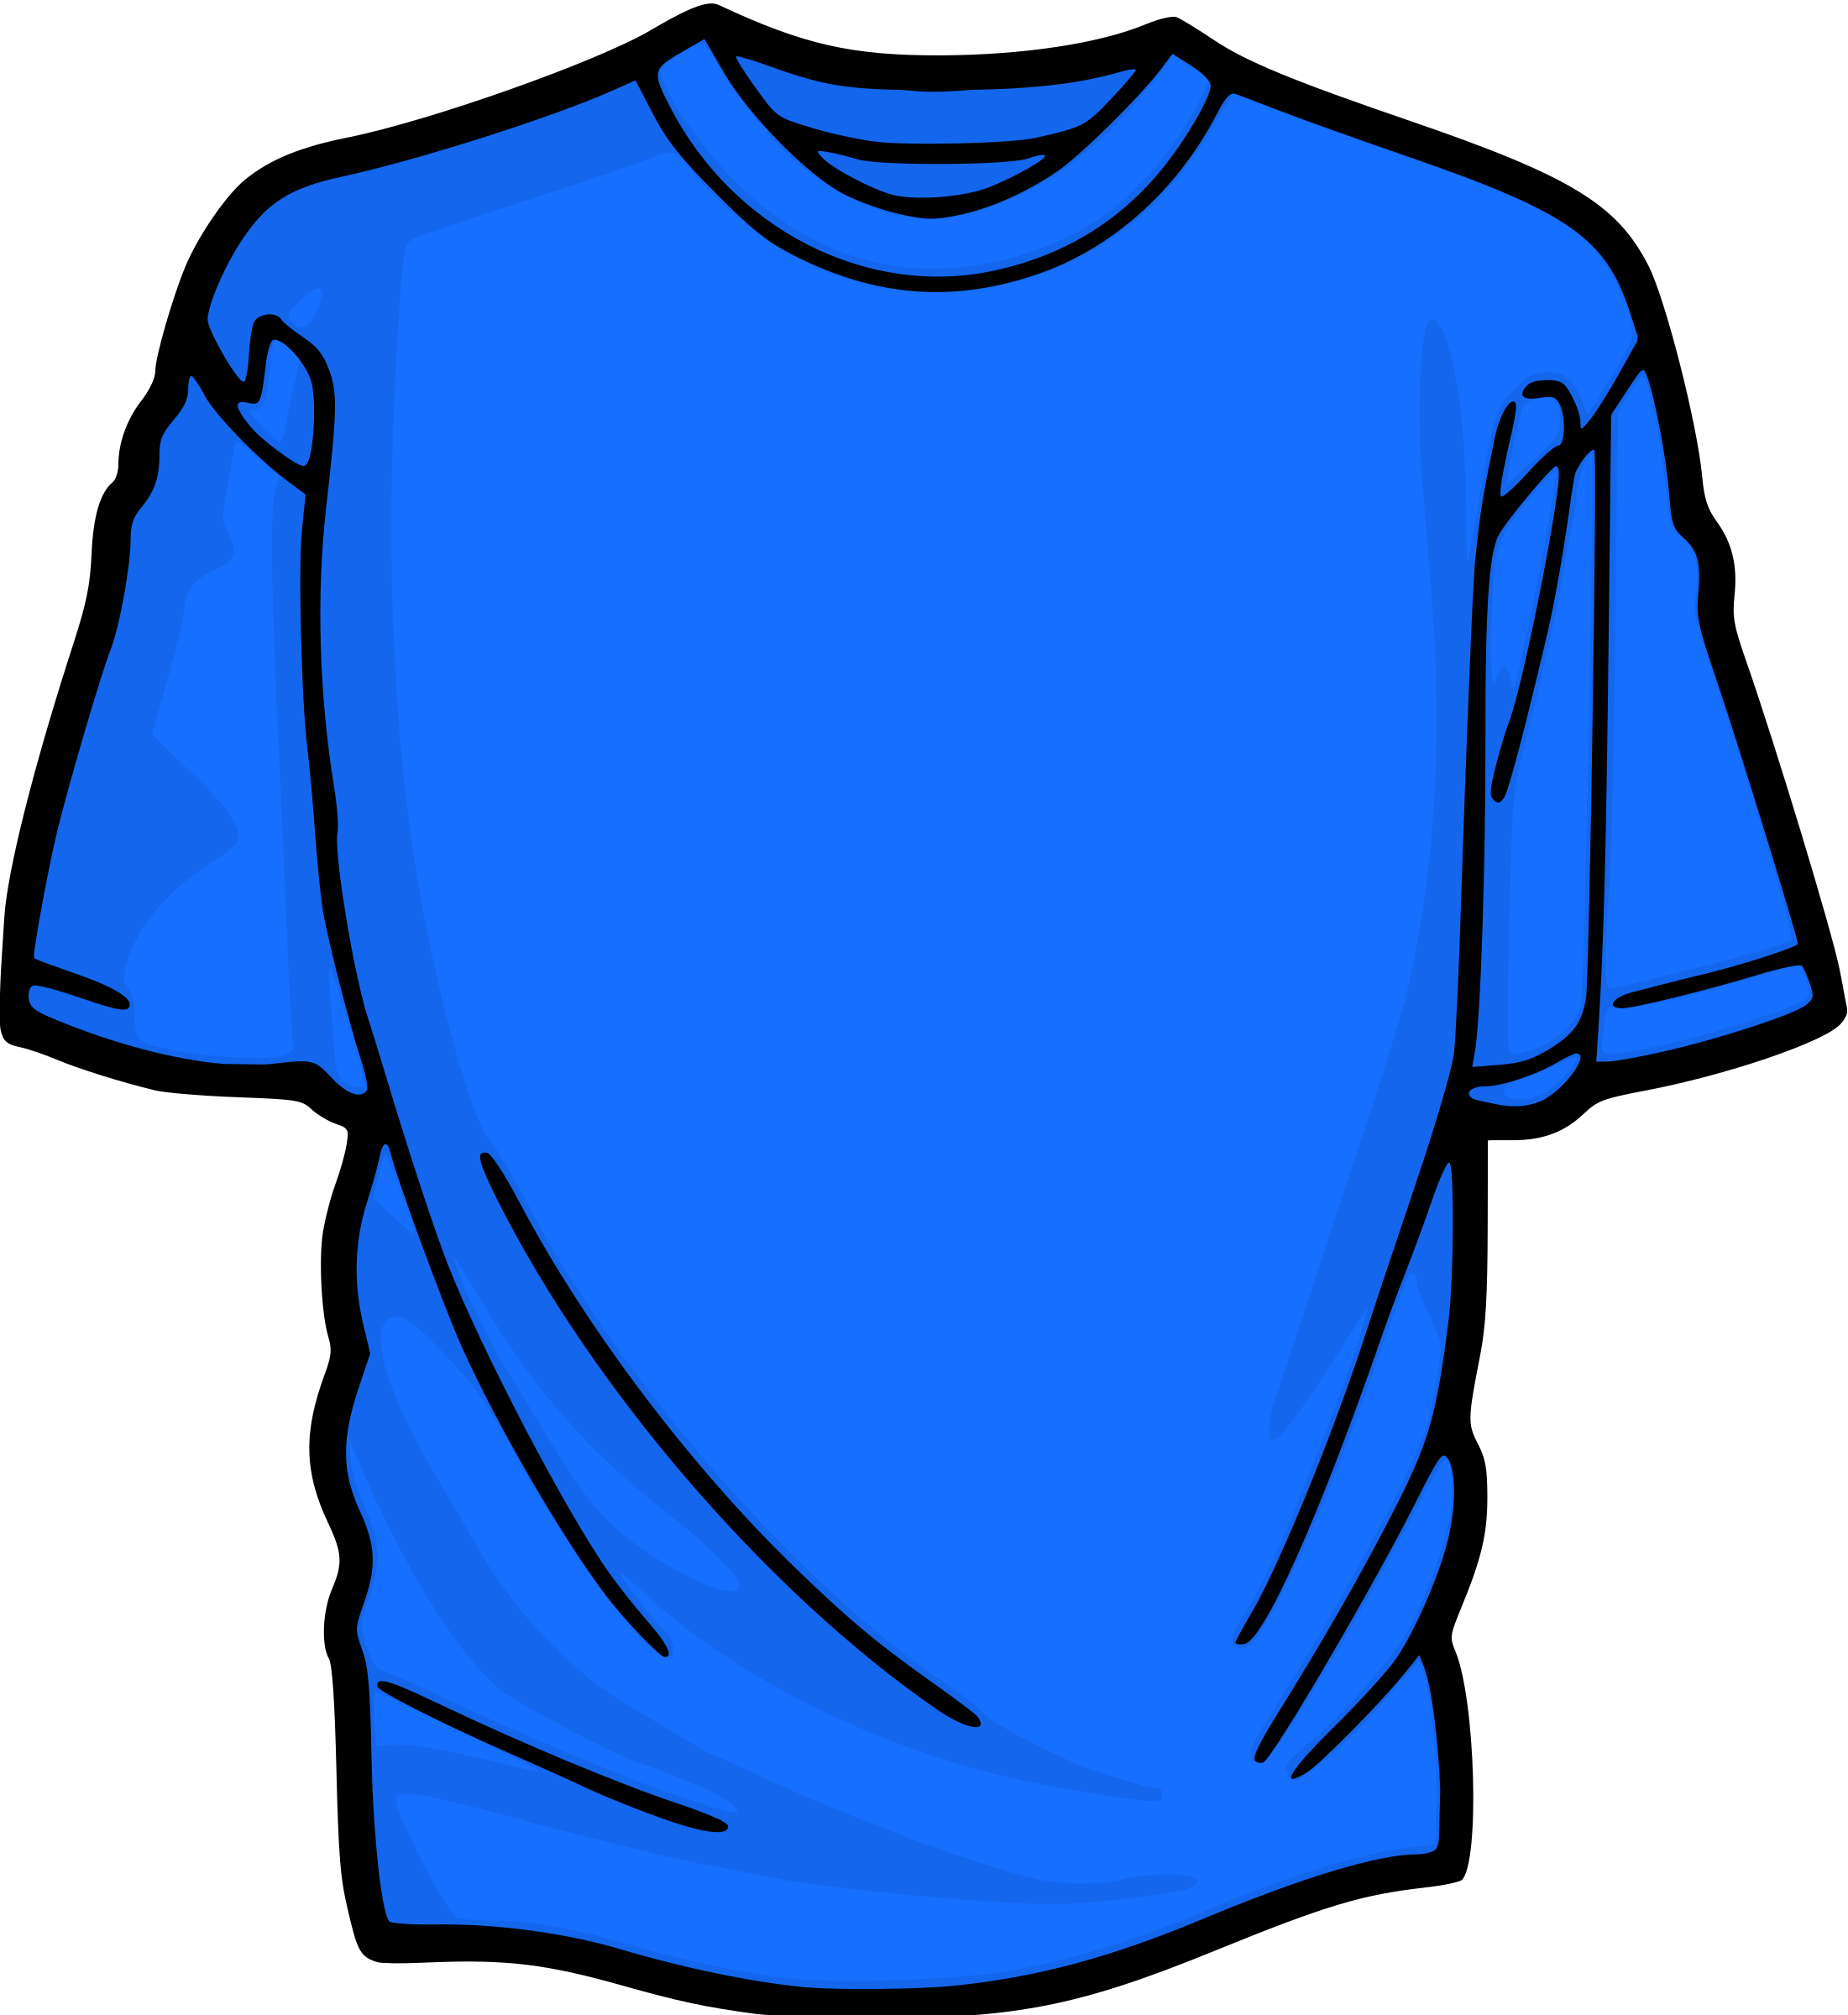 Clipart for tee shirts clipart transparent download Royalty Free Clipart For T Shirts   Azərbaycan Dillər Universiteti clipart transparent download